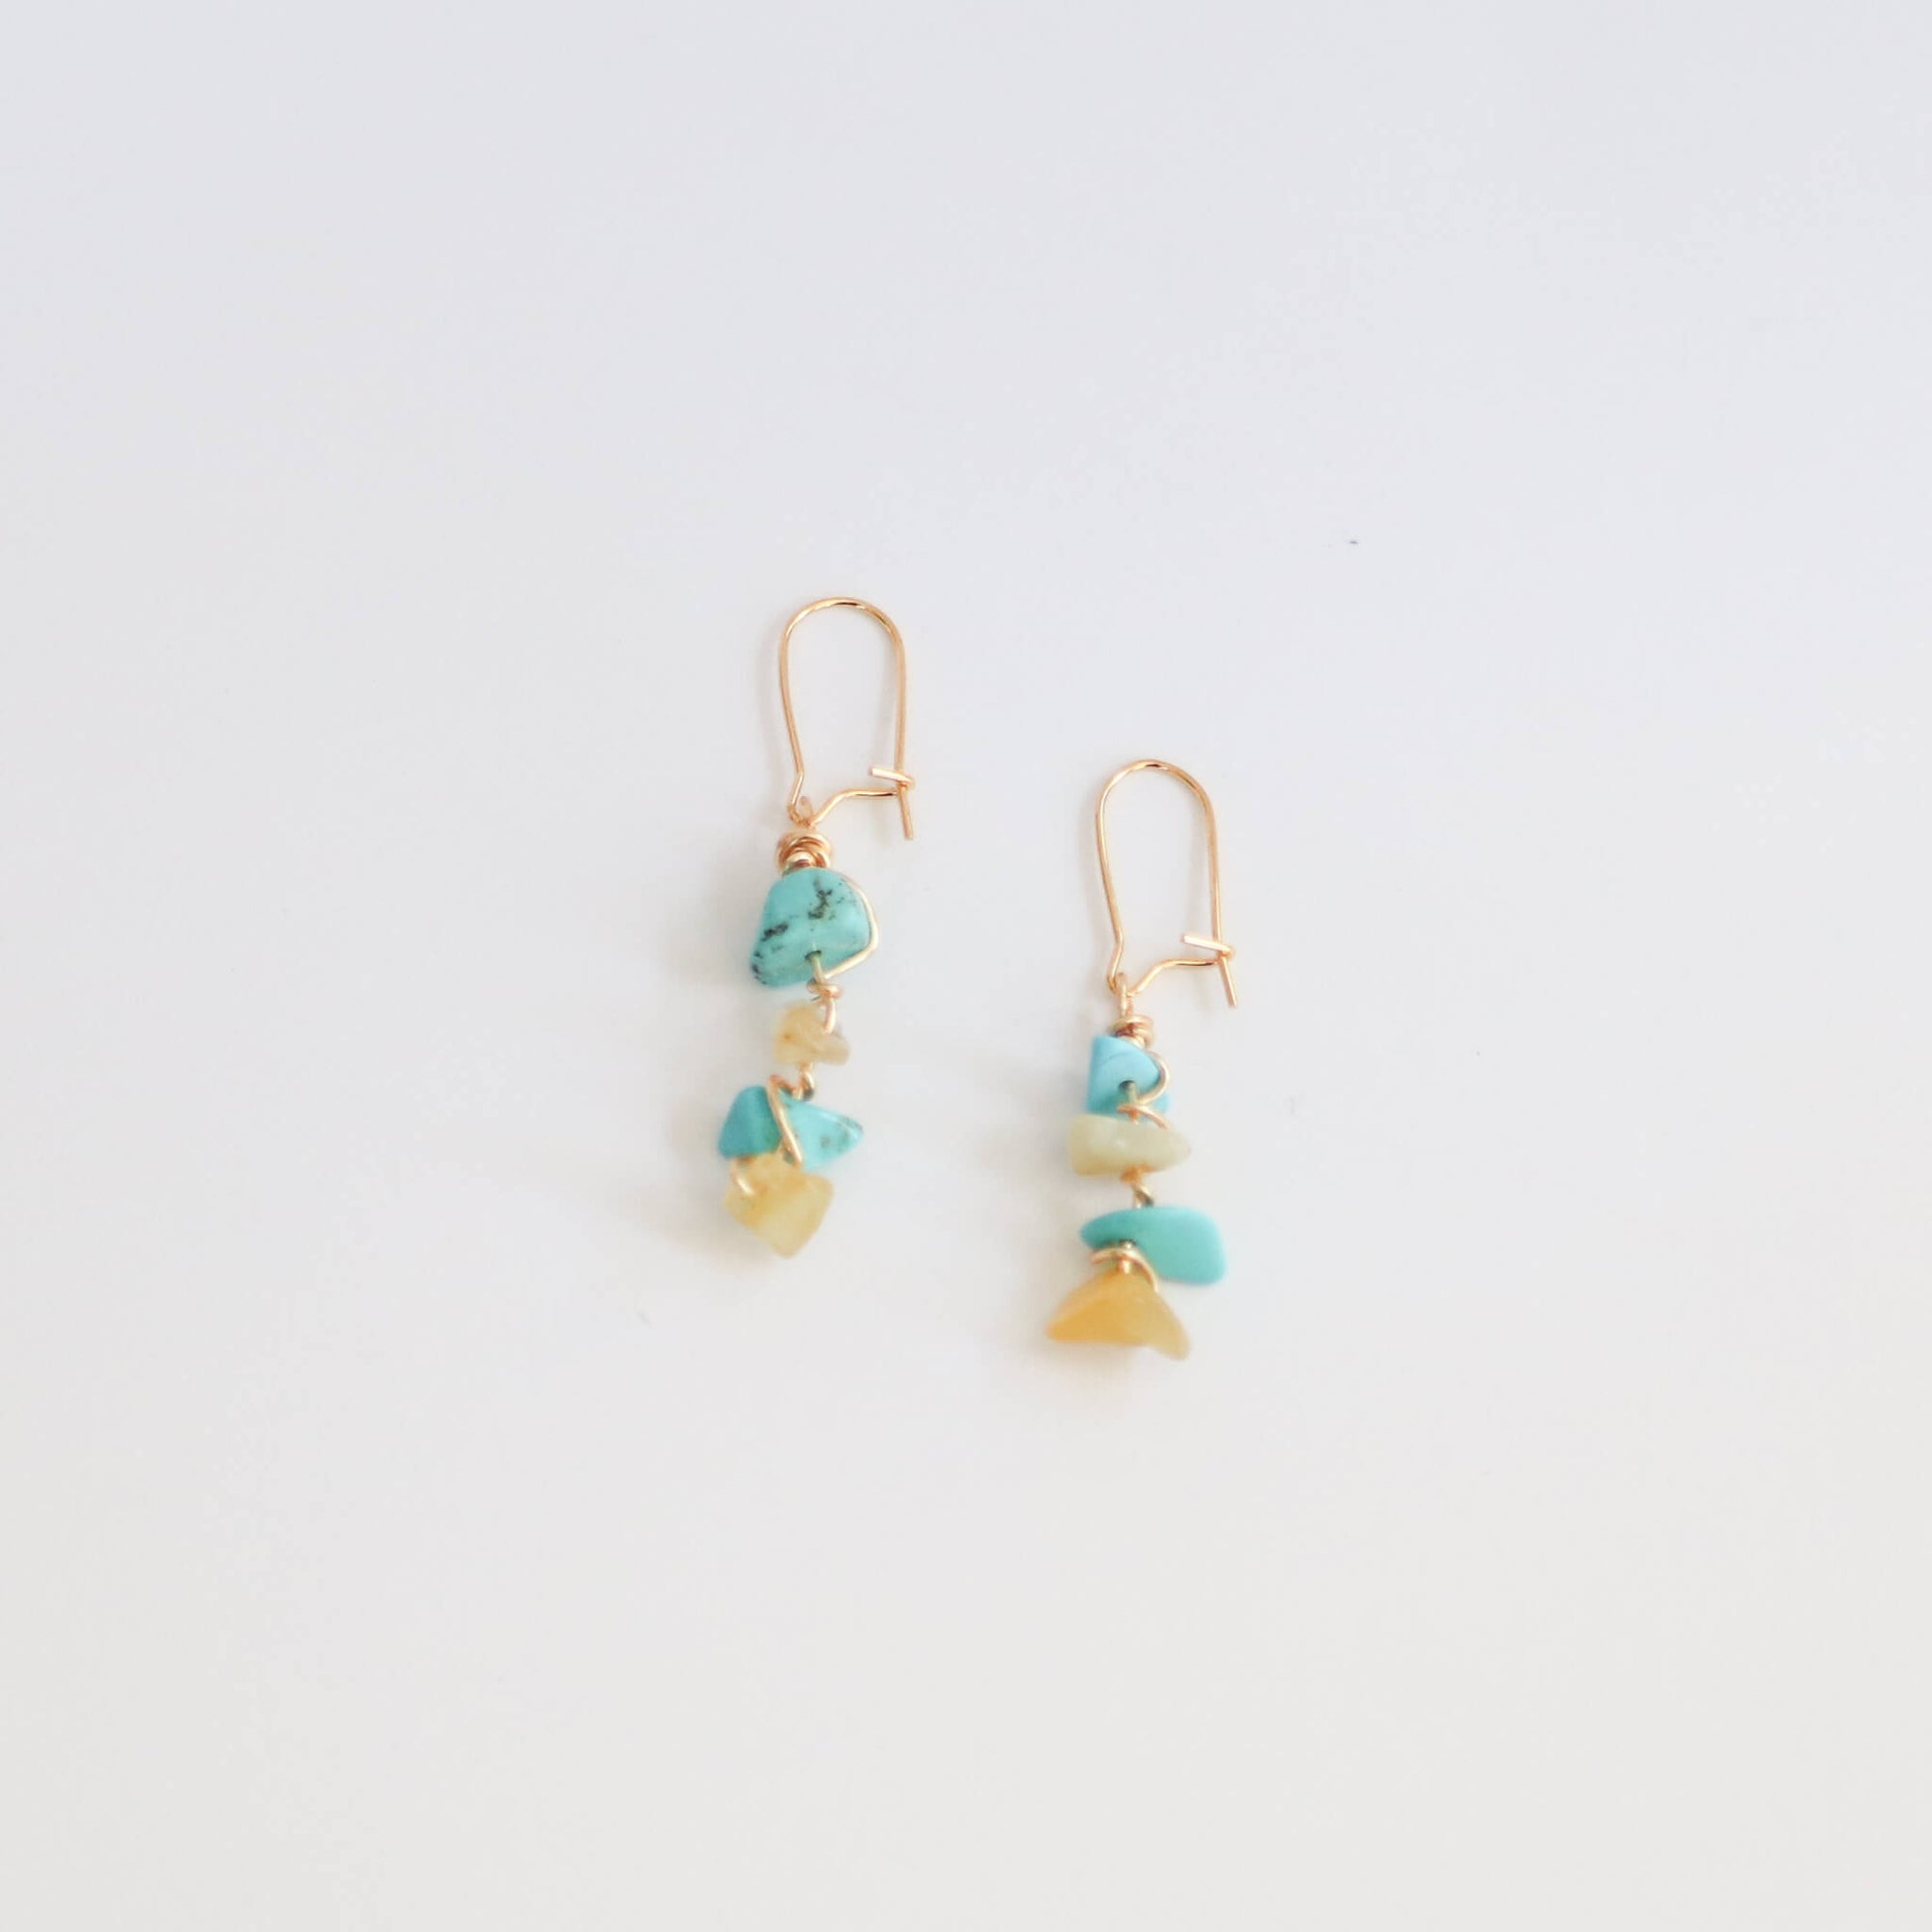 Turquoise & Citrine Dangle Earrings